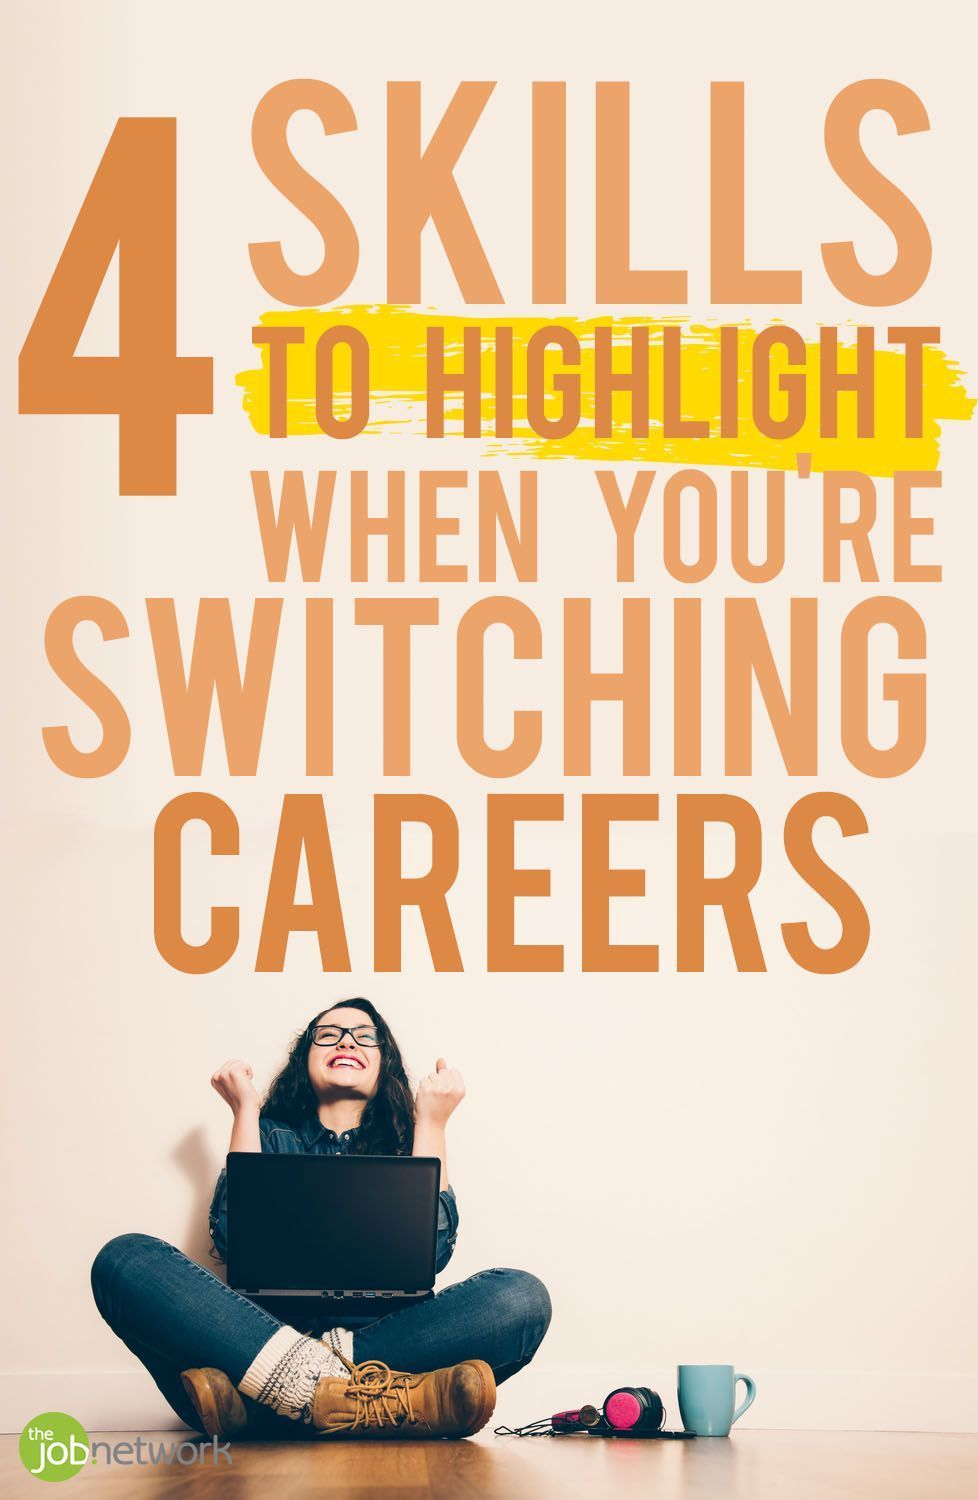 How to highlight transferable skills in a resume or cover letter